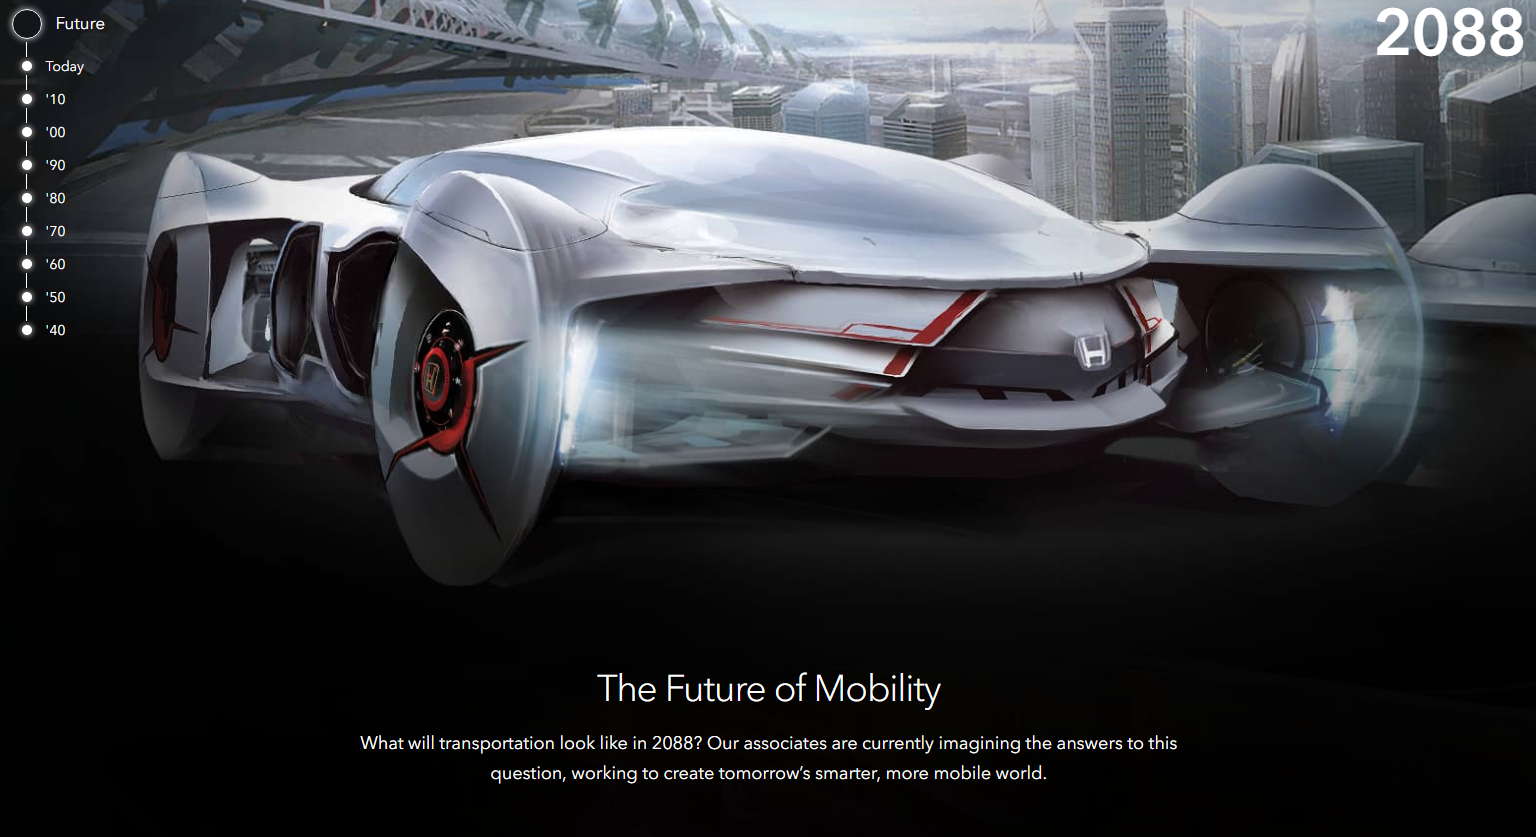 Honda Launches New Mobile Friendly About Website With Emphasis On Future